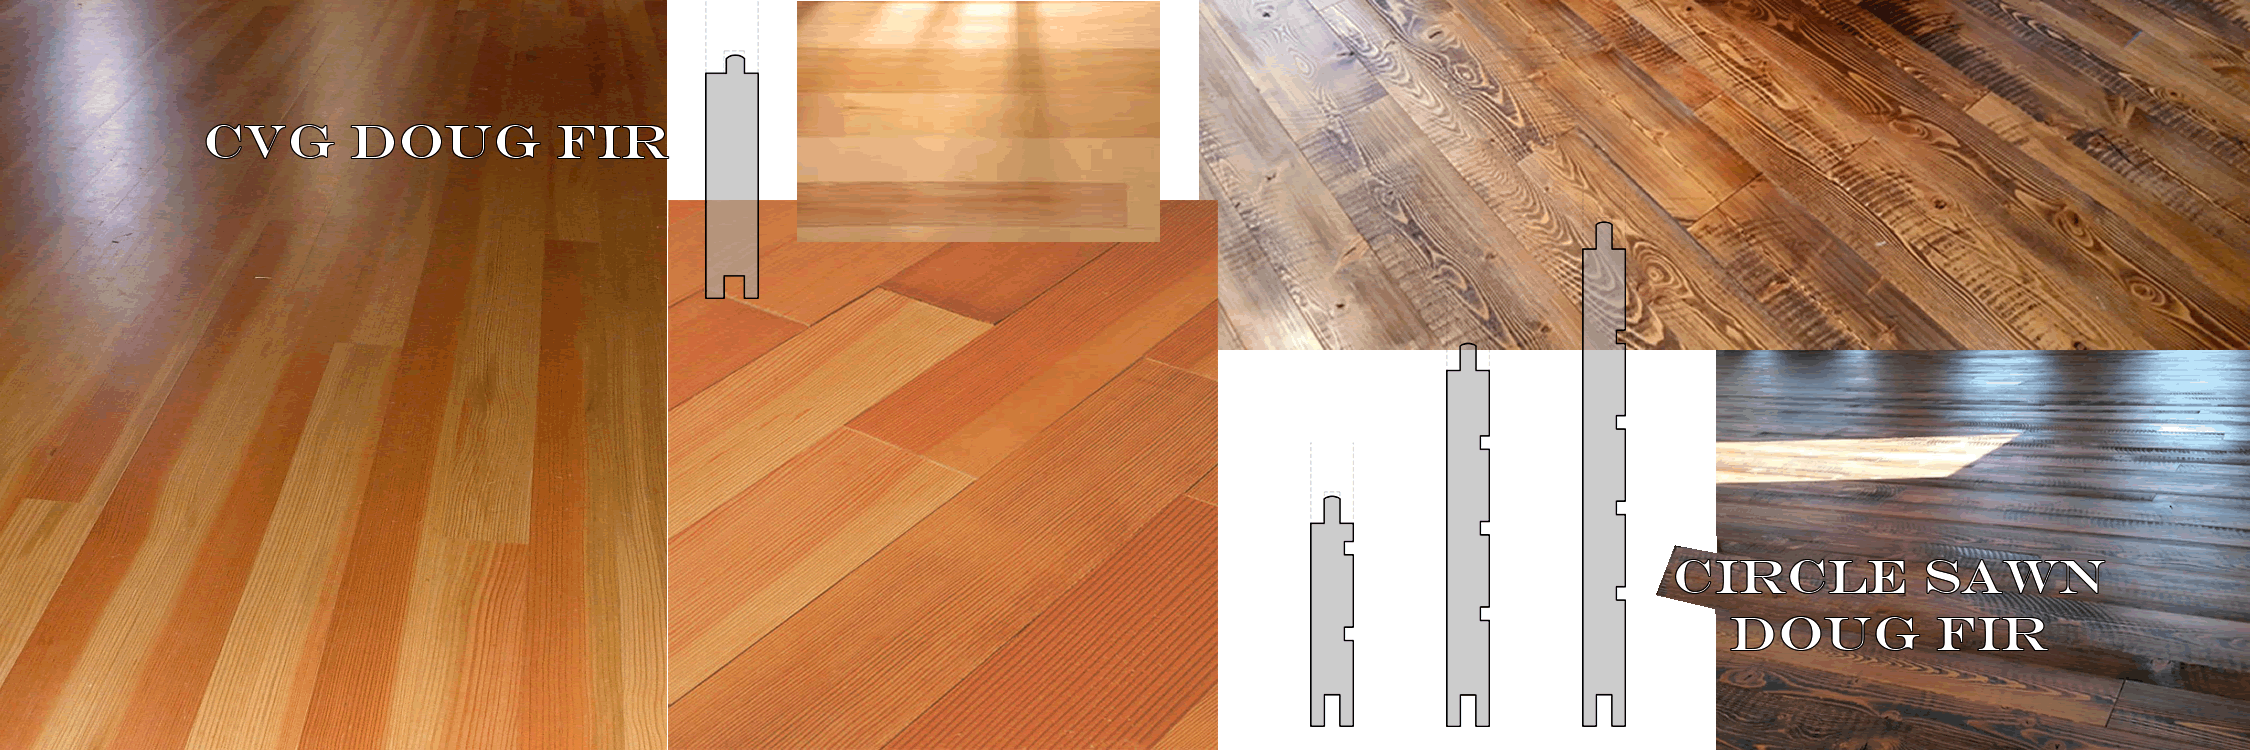 images and profiles of clear verticle grain & circle sawn doug fir flooring